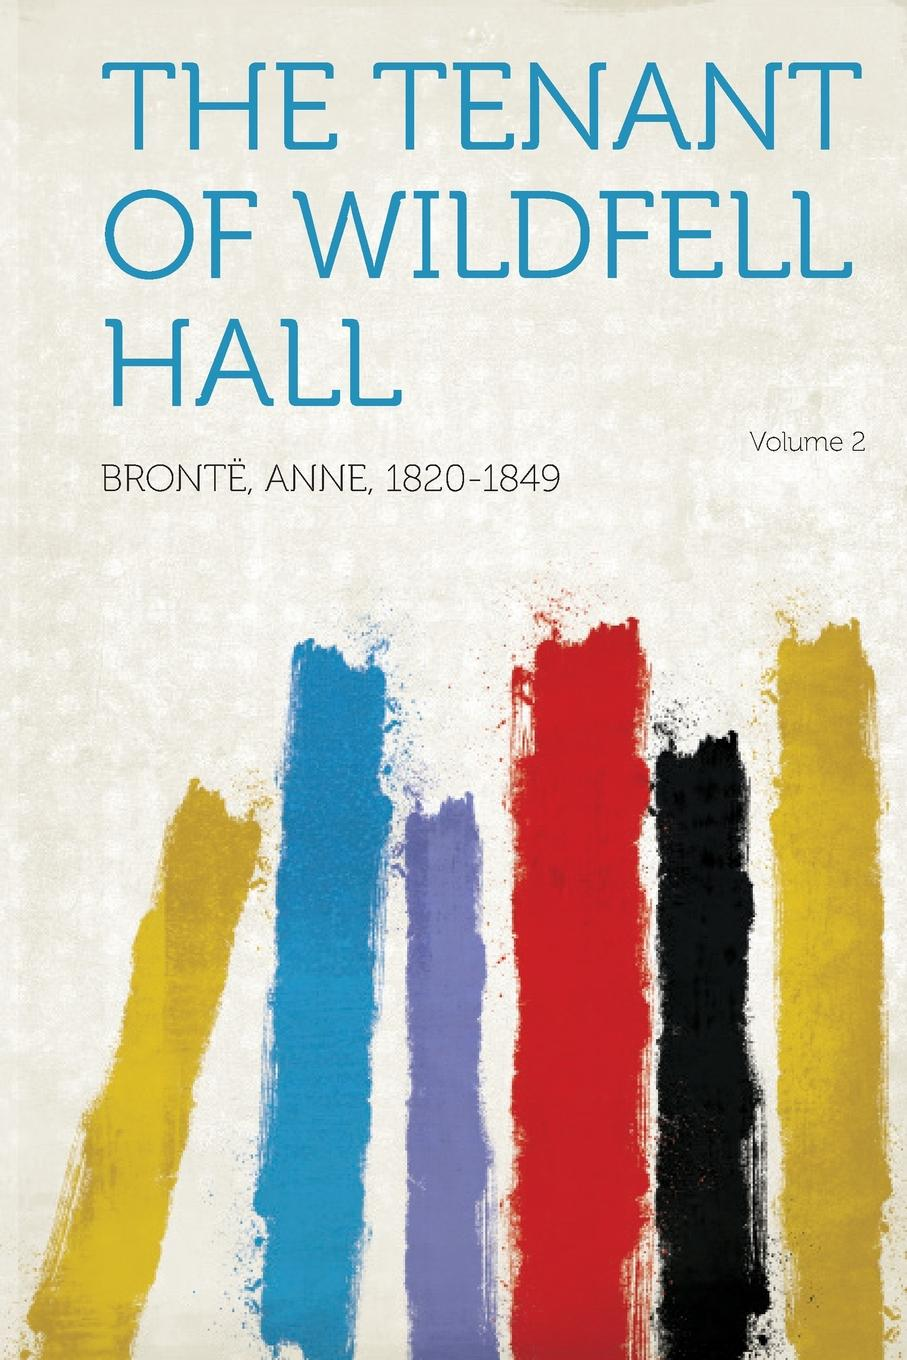 Bronte Anne 1820-1849 The Tenant of Wildfell Hall Volume 2